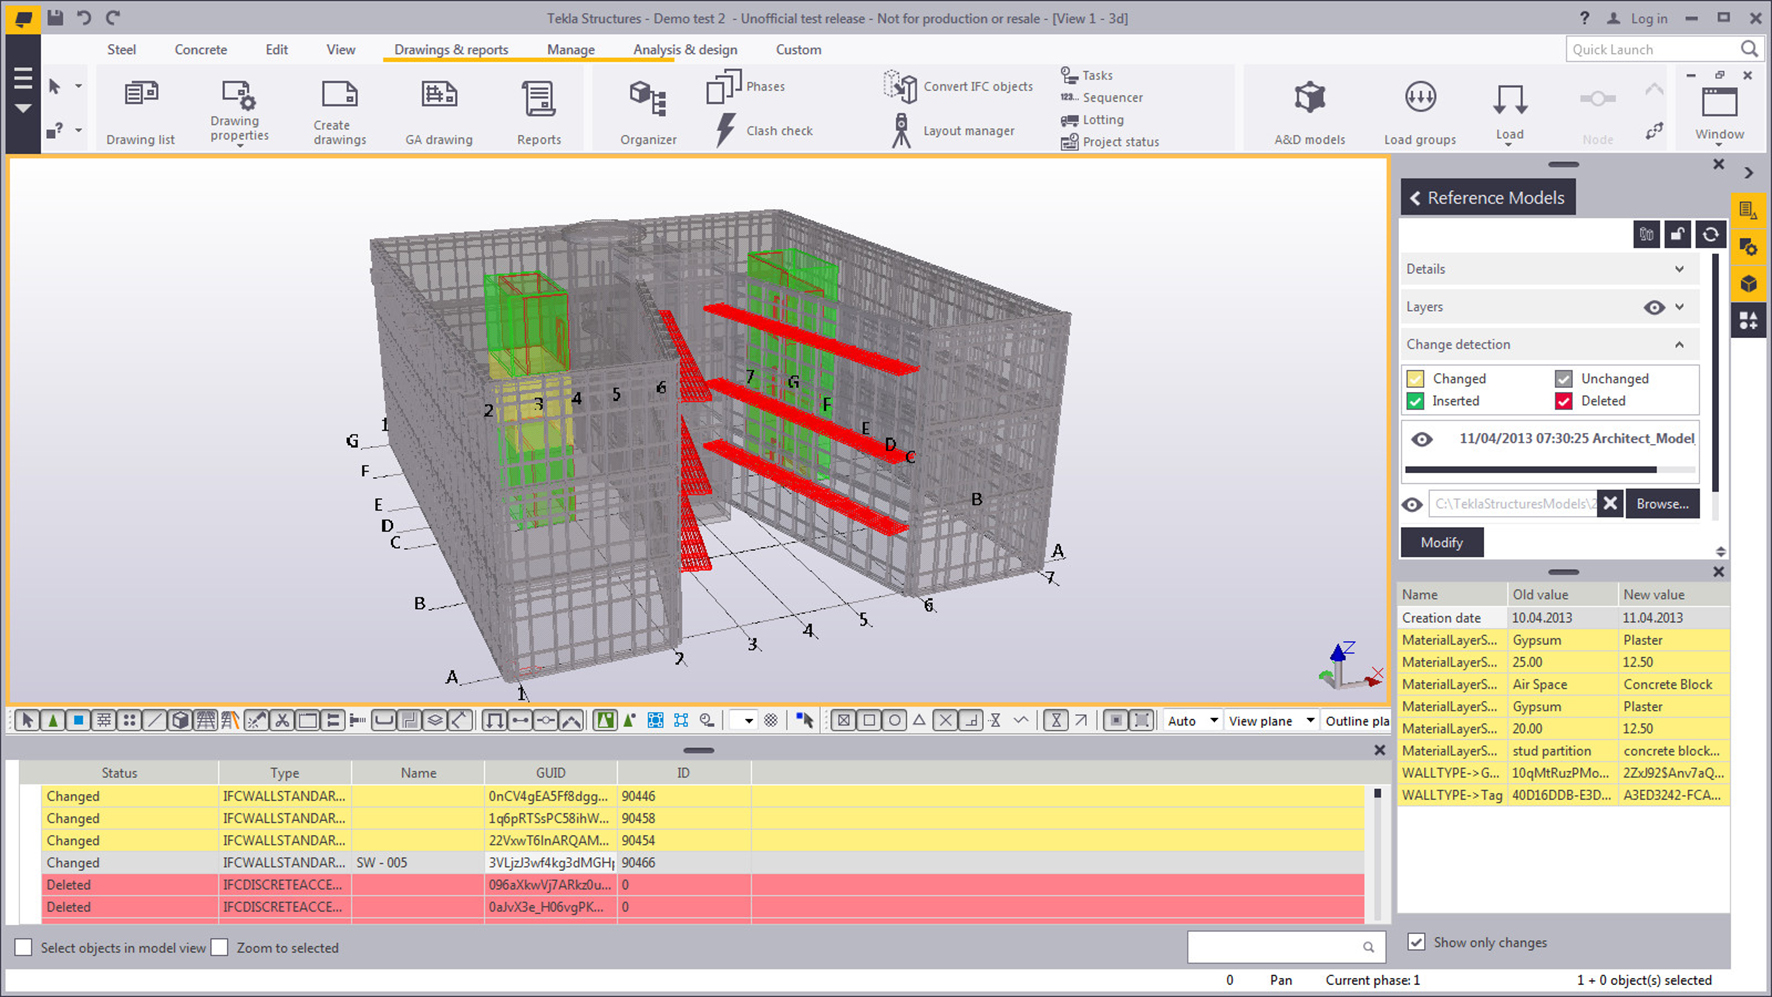 3 New Releases for Tekla Users - CADdigest